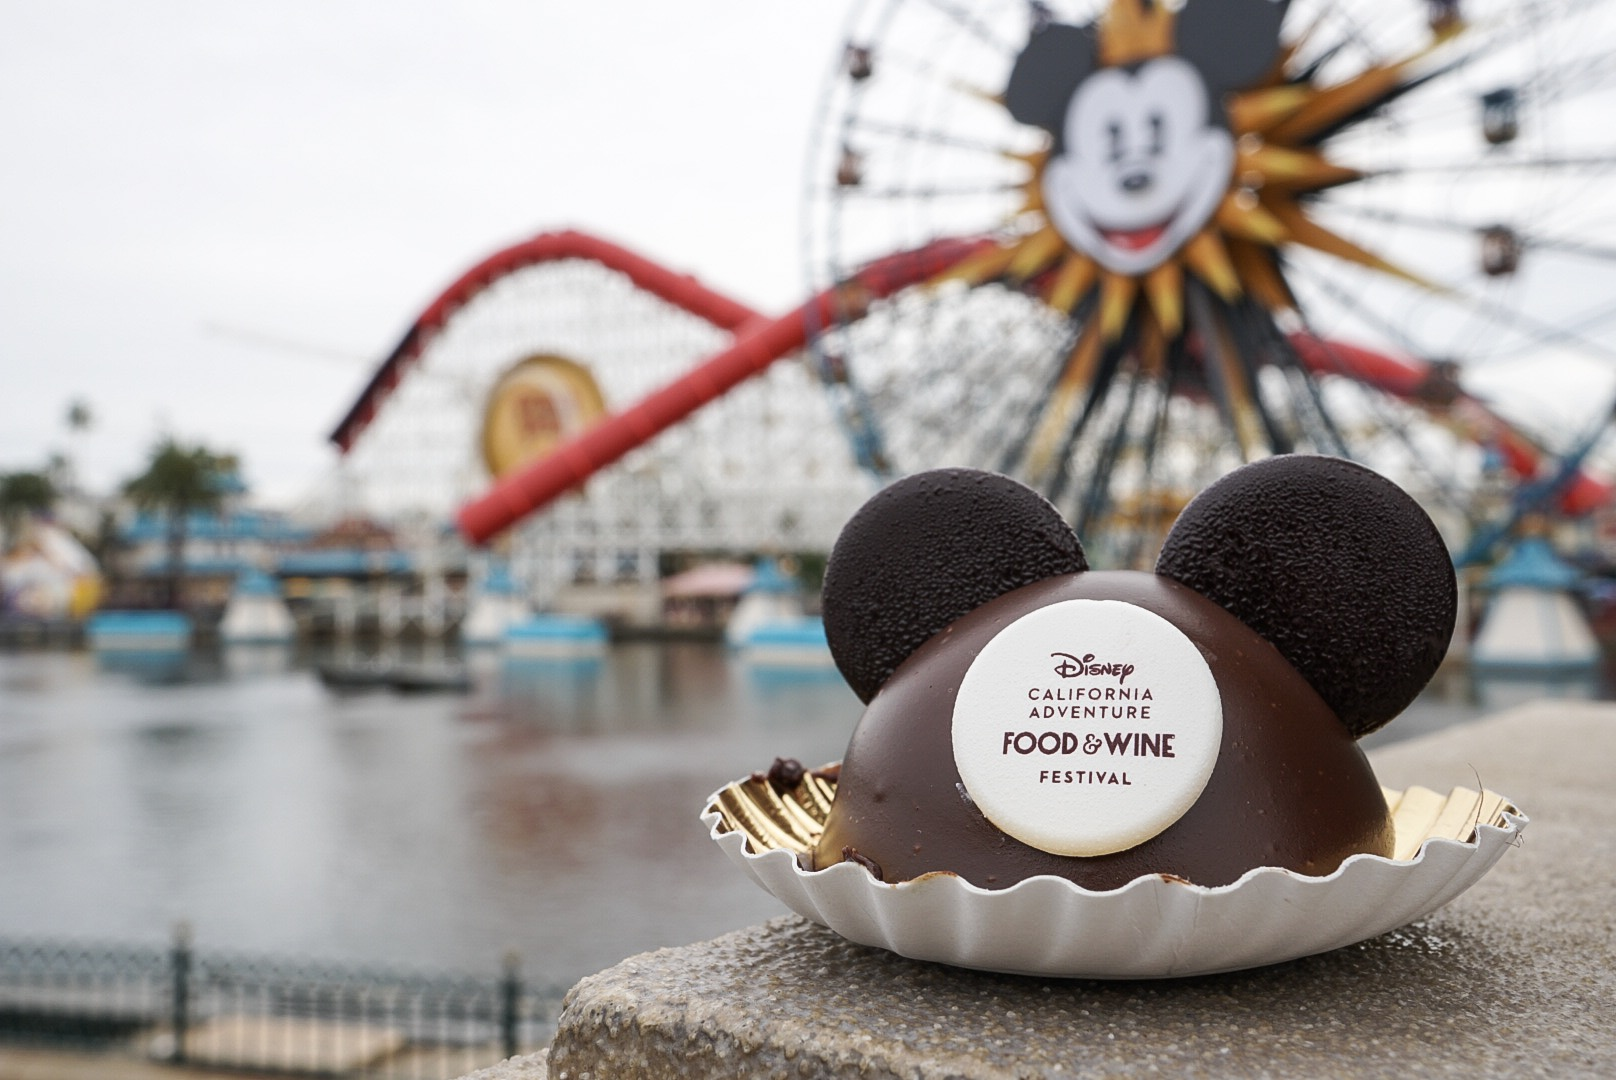 Here's What's New From the Disneyland California Food and Wine Festival 2019